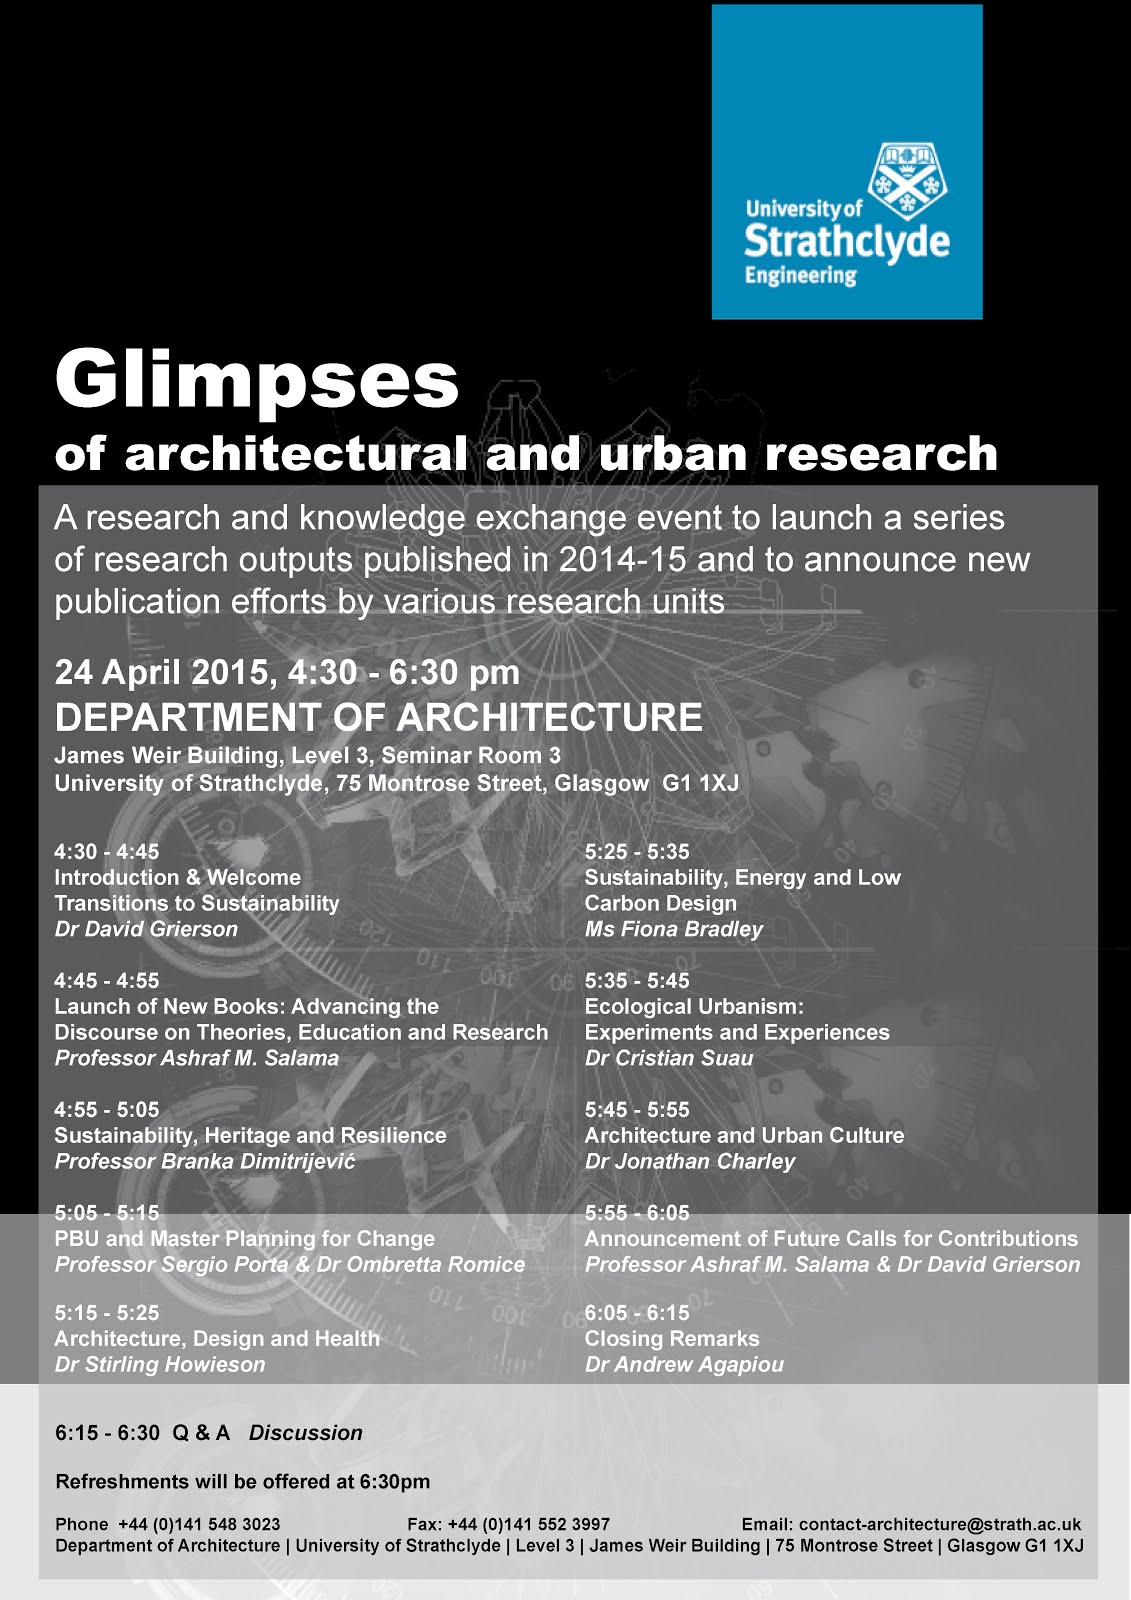 Glimpses of Architectural & Urban Research